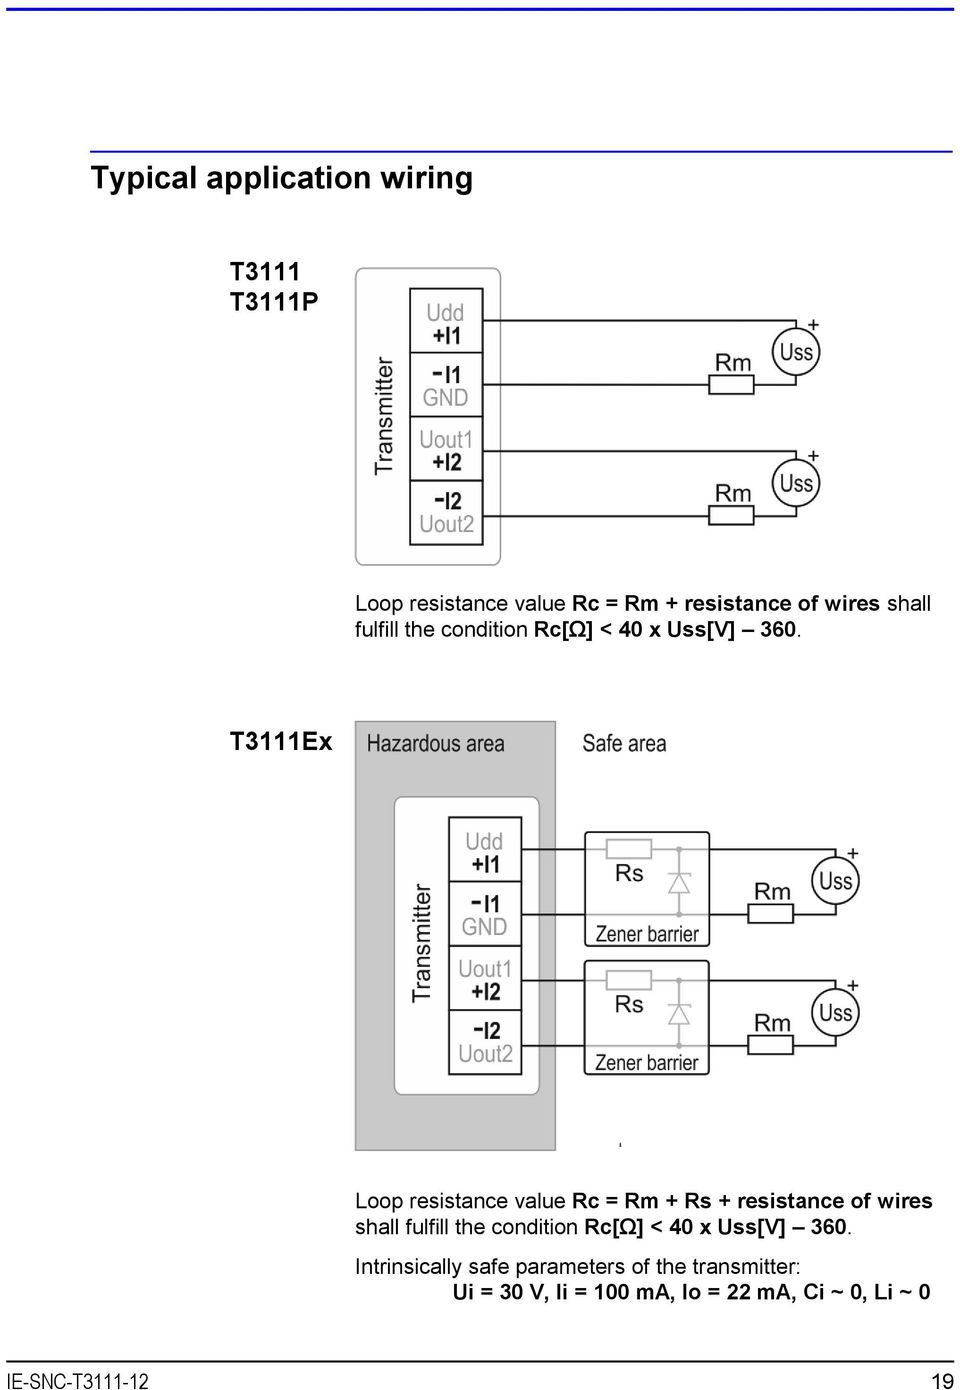 intrinsically safe wiring rules wiring solutions rh rausco com Intrinsically Safe Circuit Intrinsically Safe Switch